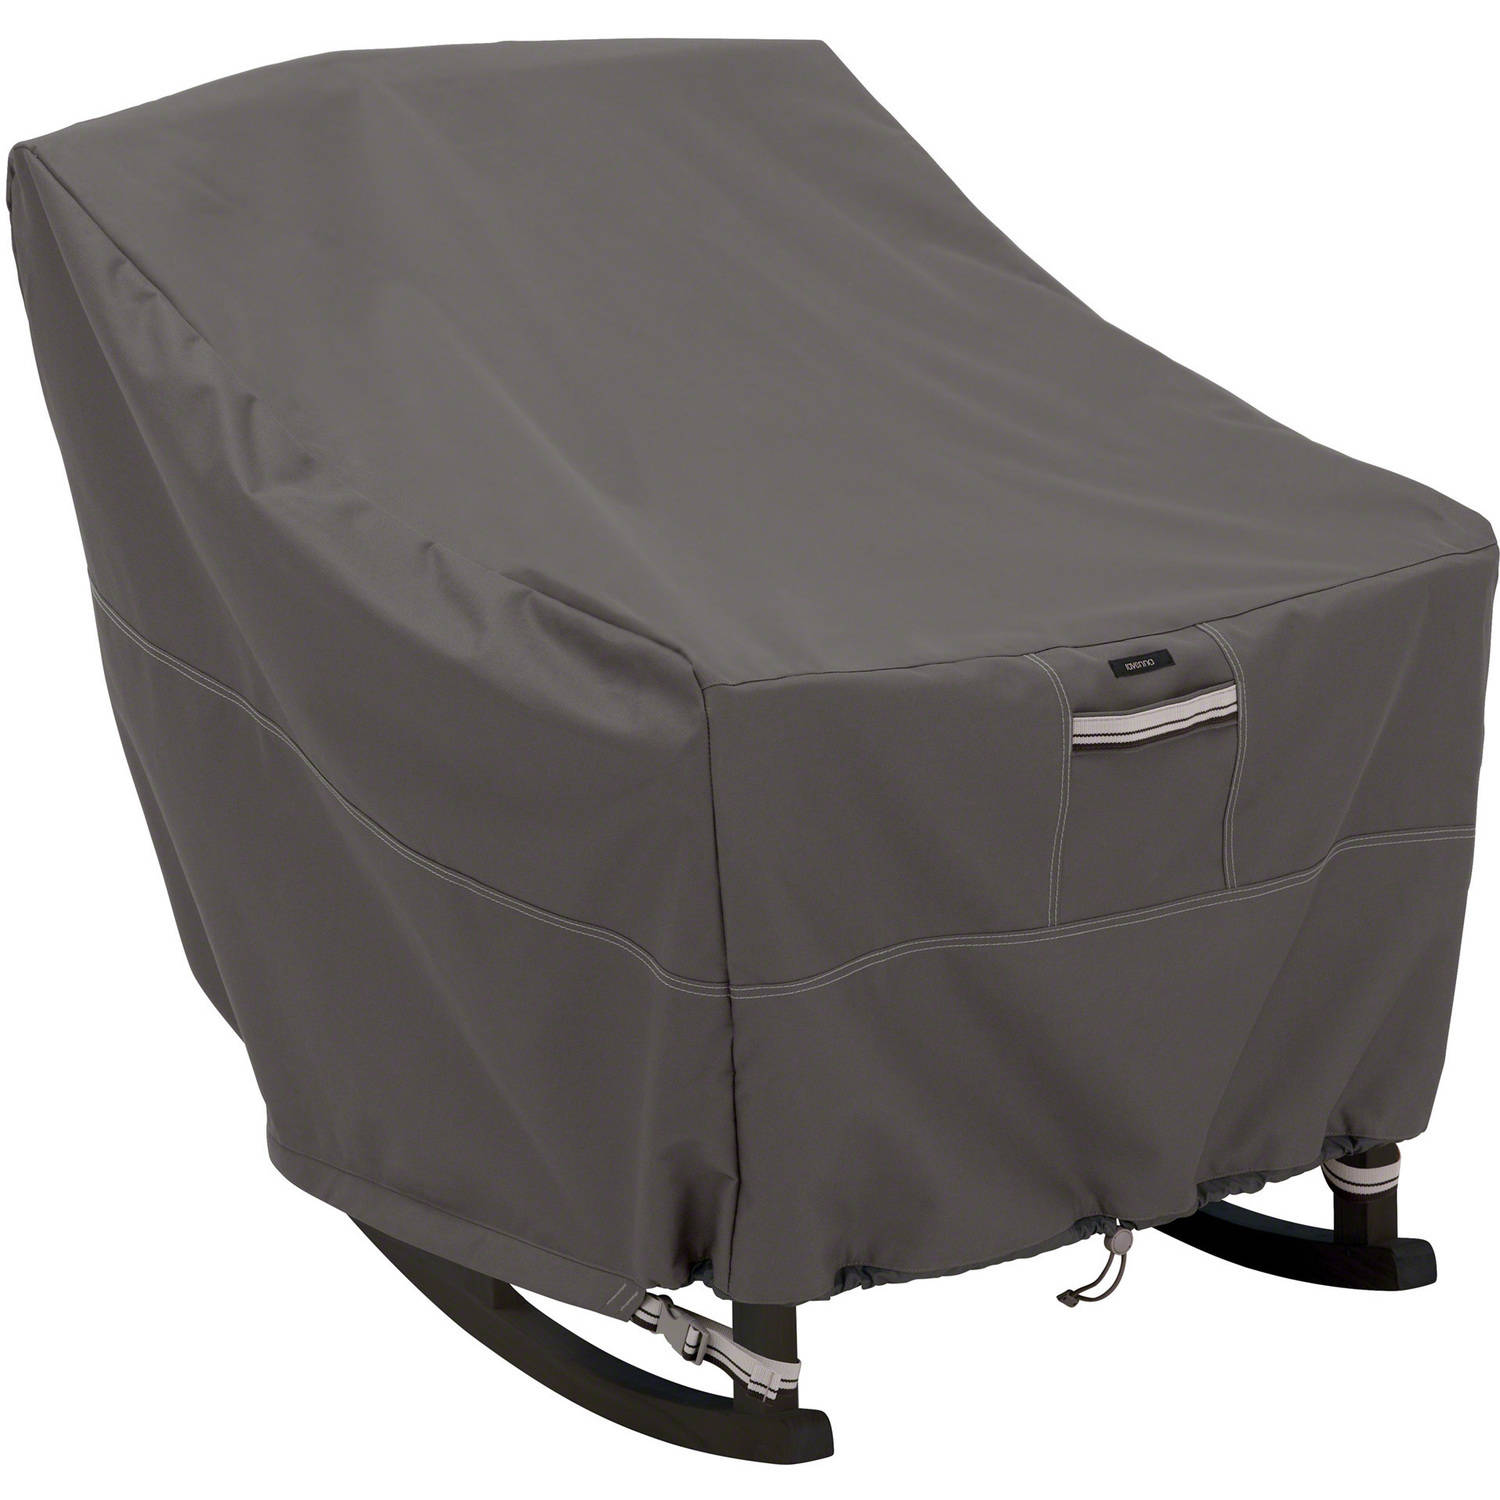 Classic Accessories Ravenna Porch Rocking Chair Patio Furniture Storage Cover, Taupe